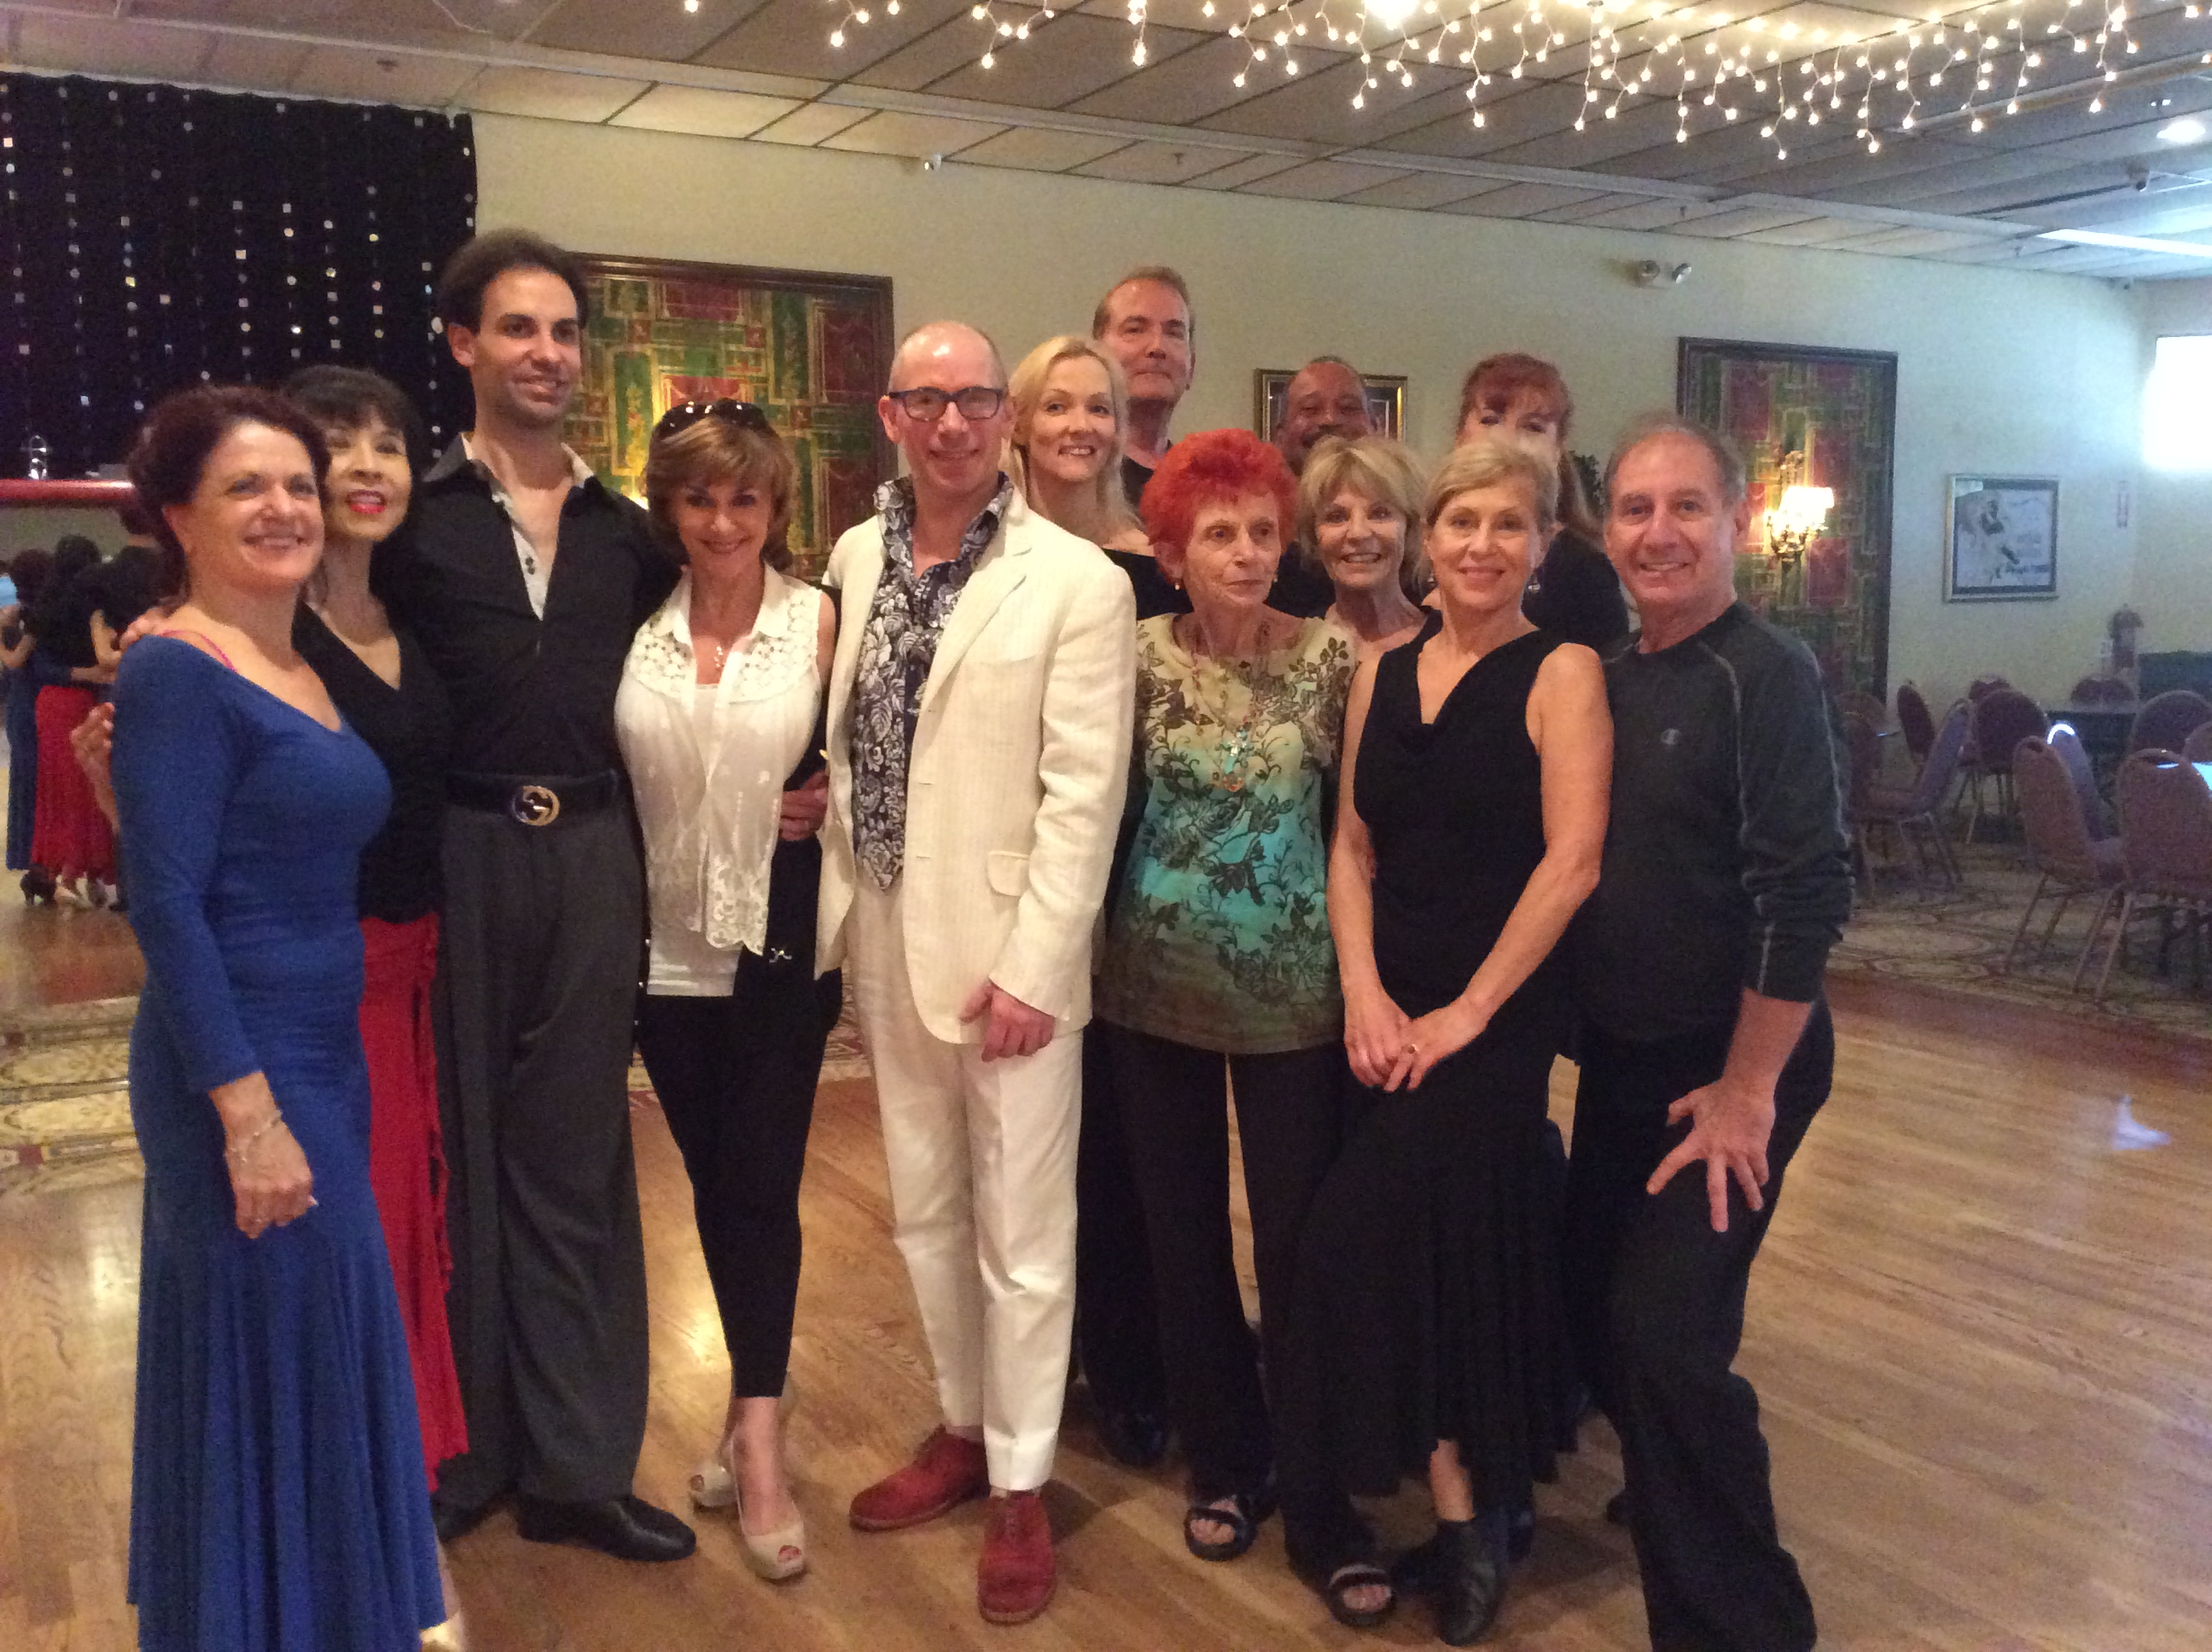 Paul Killick, Shirley Ballas & Rufus Dustin with an Impromptu Gathering of Some of Our World Class Instructors and Students at Goldcoast Ballroom, Saturday, March 8, 2014